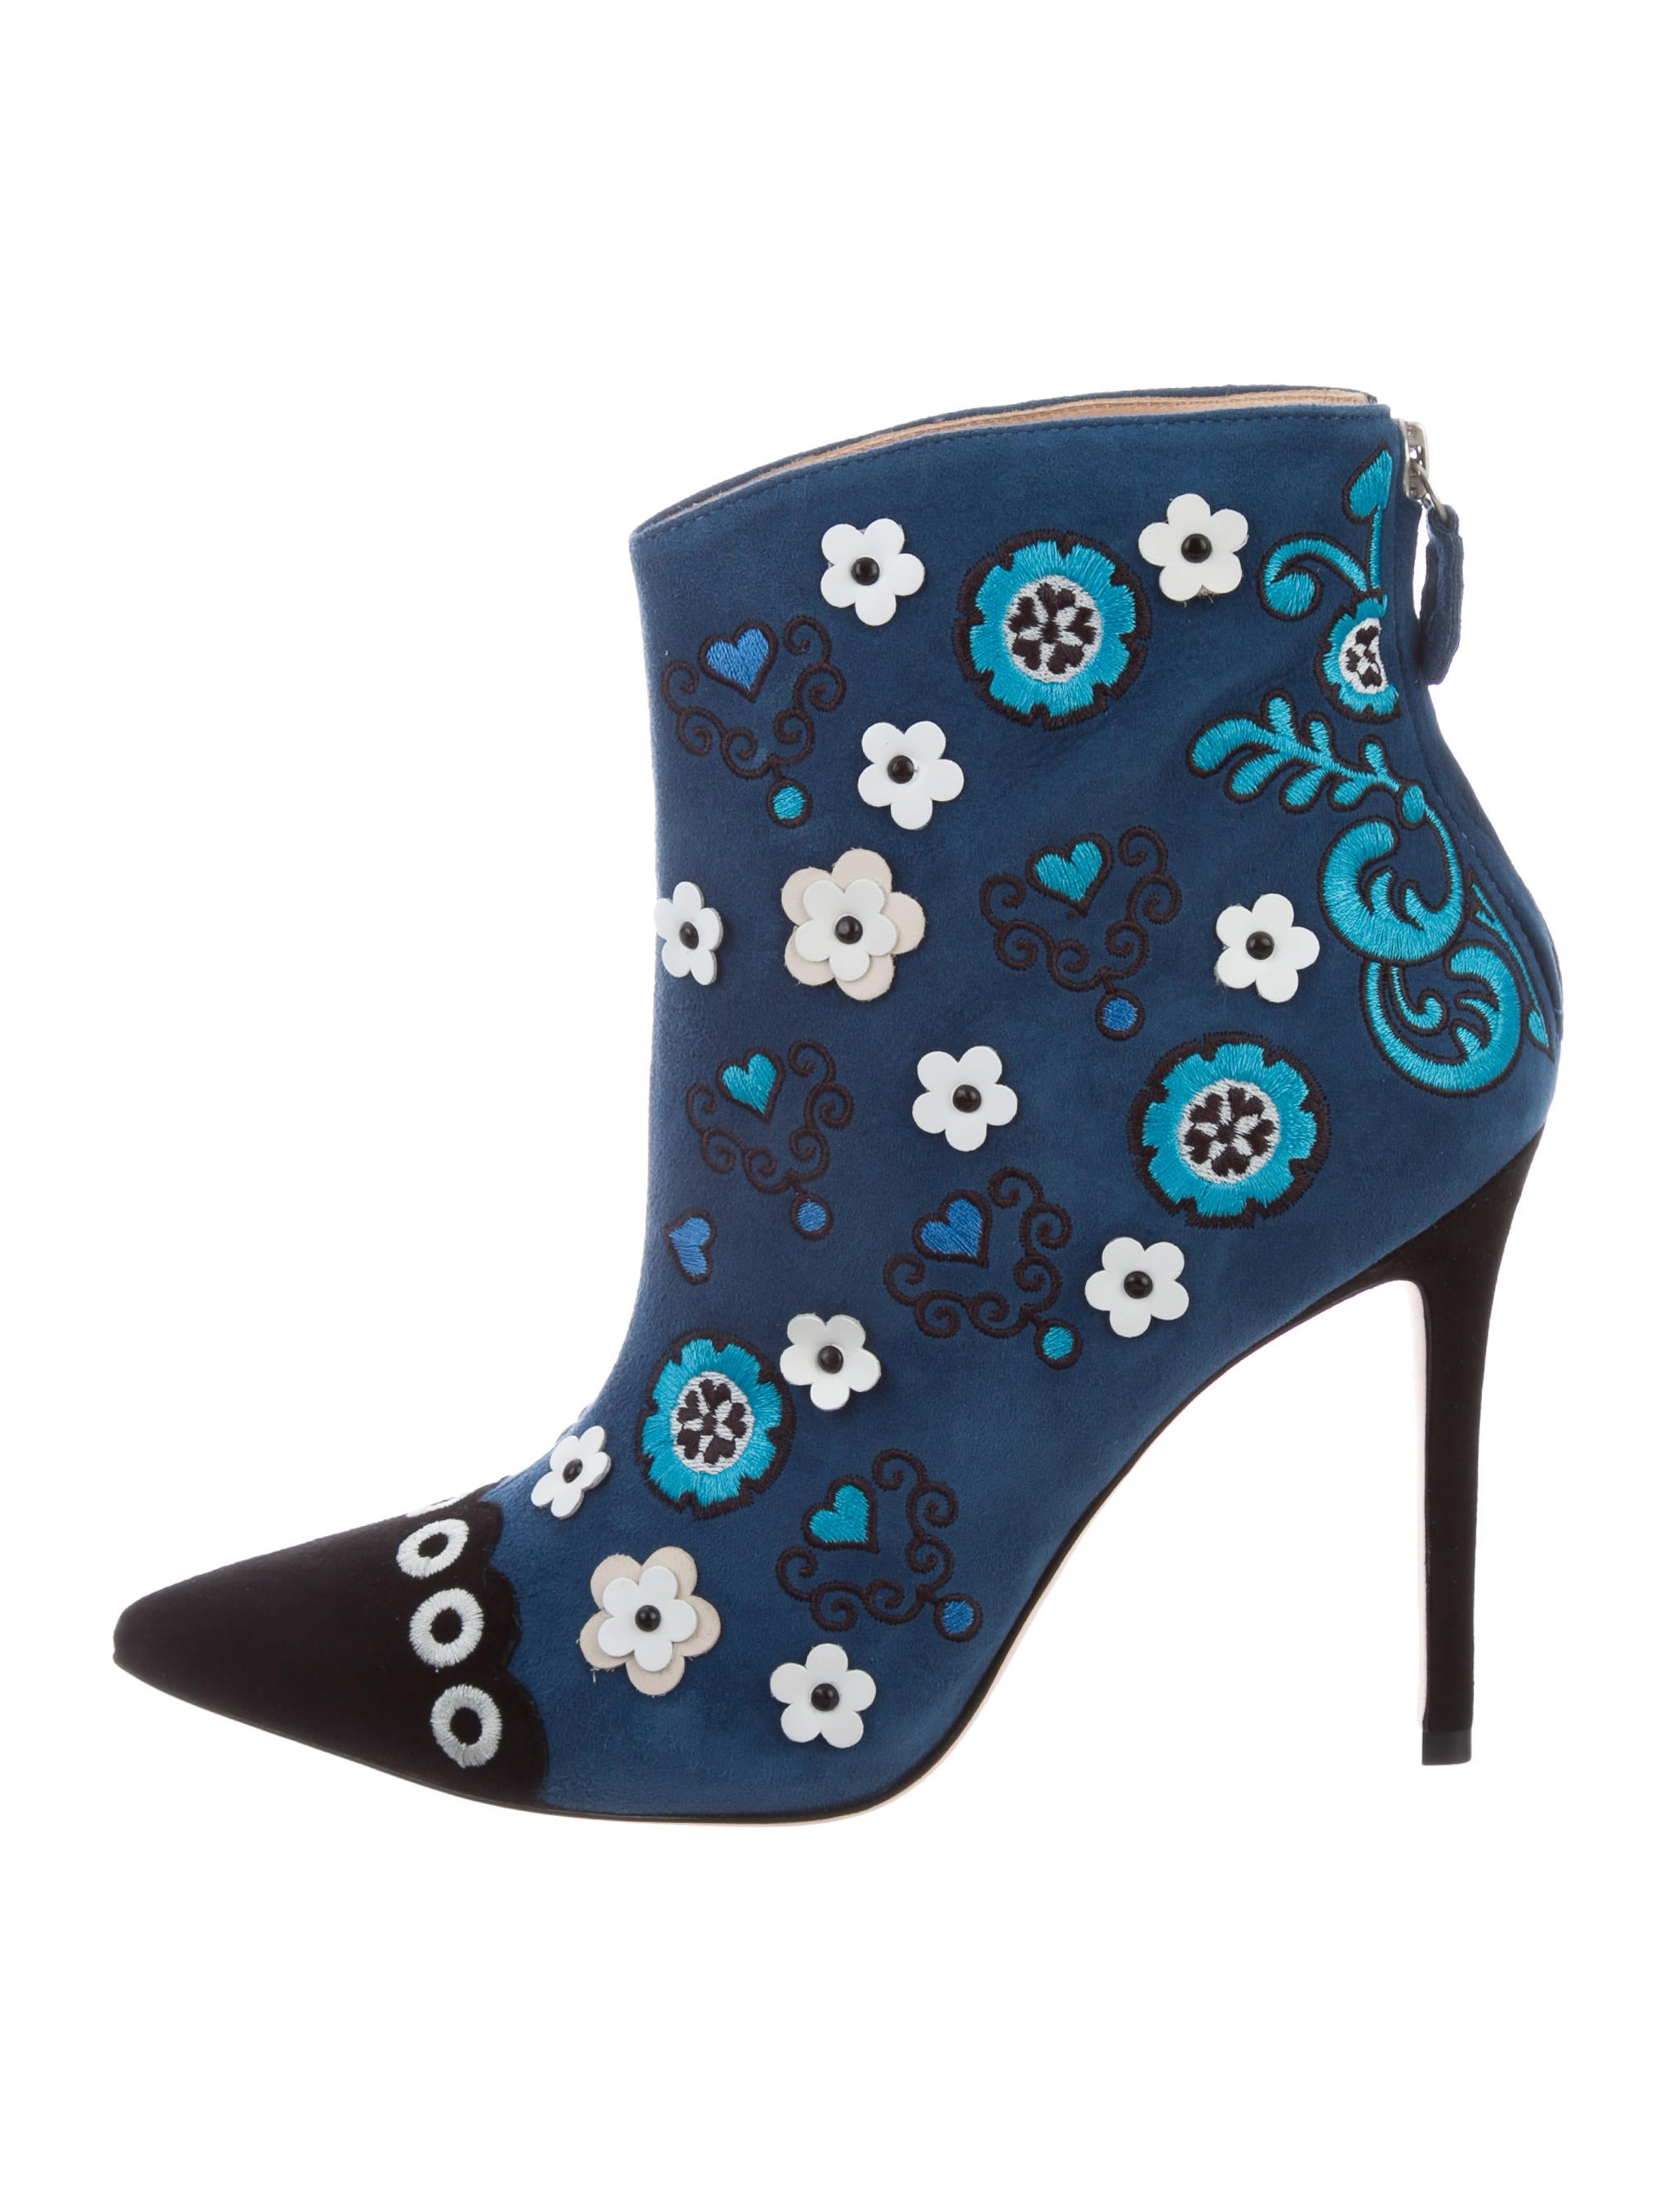 Isa Tapia Rumba Pointed-Toe Booties sale fashionable amazon online sast cheap latest 9YkoTlf3